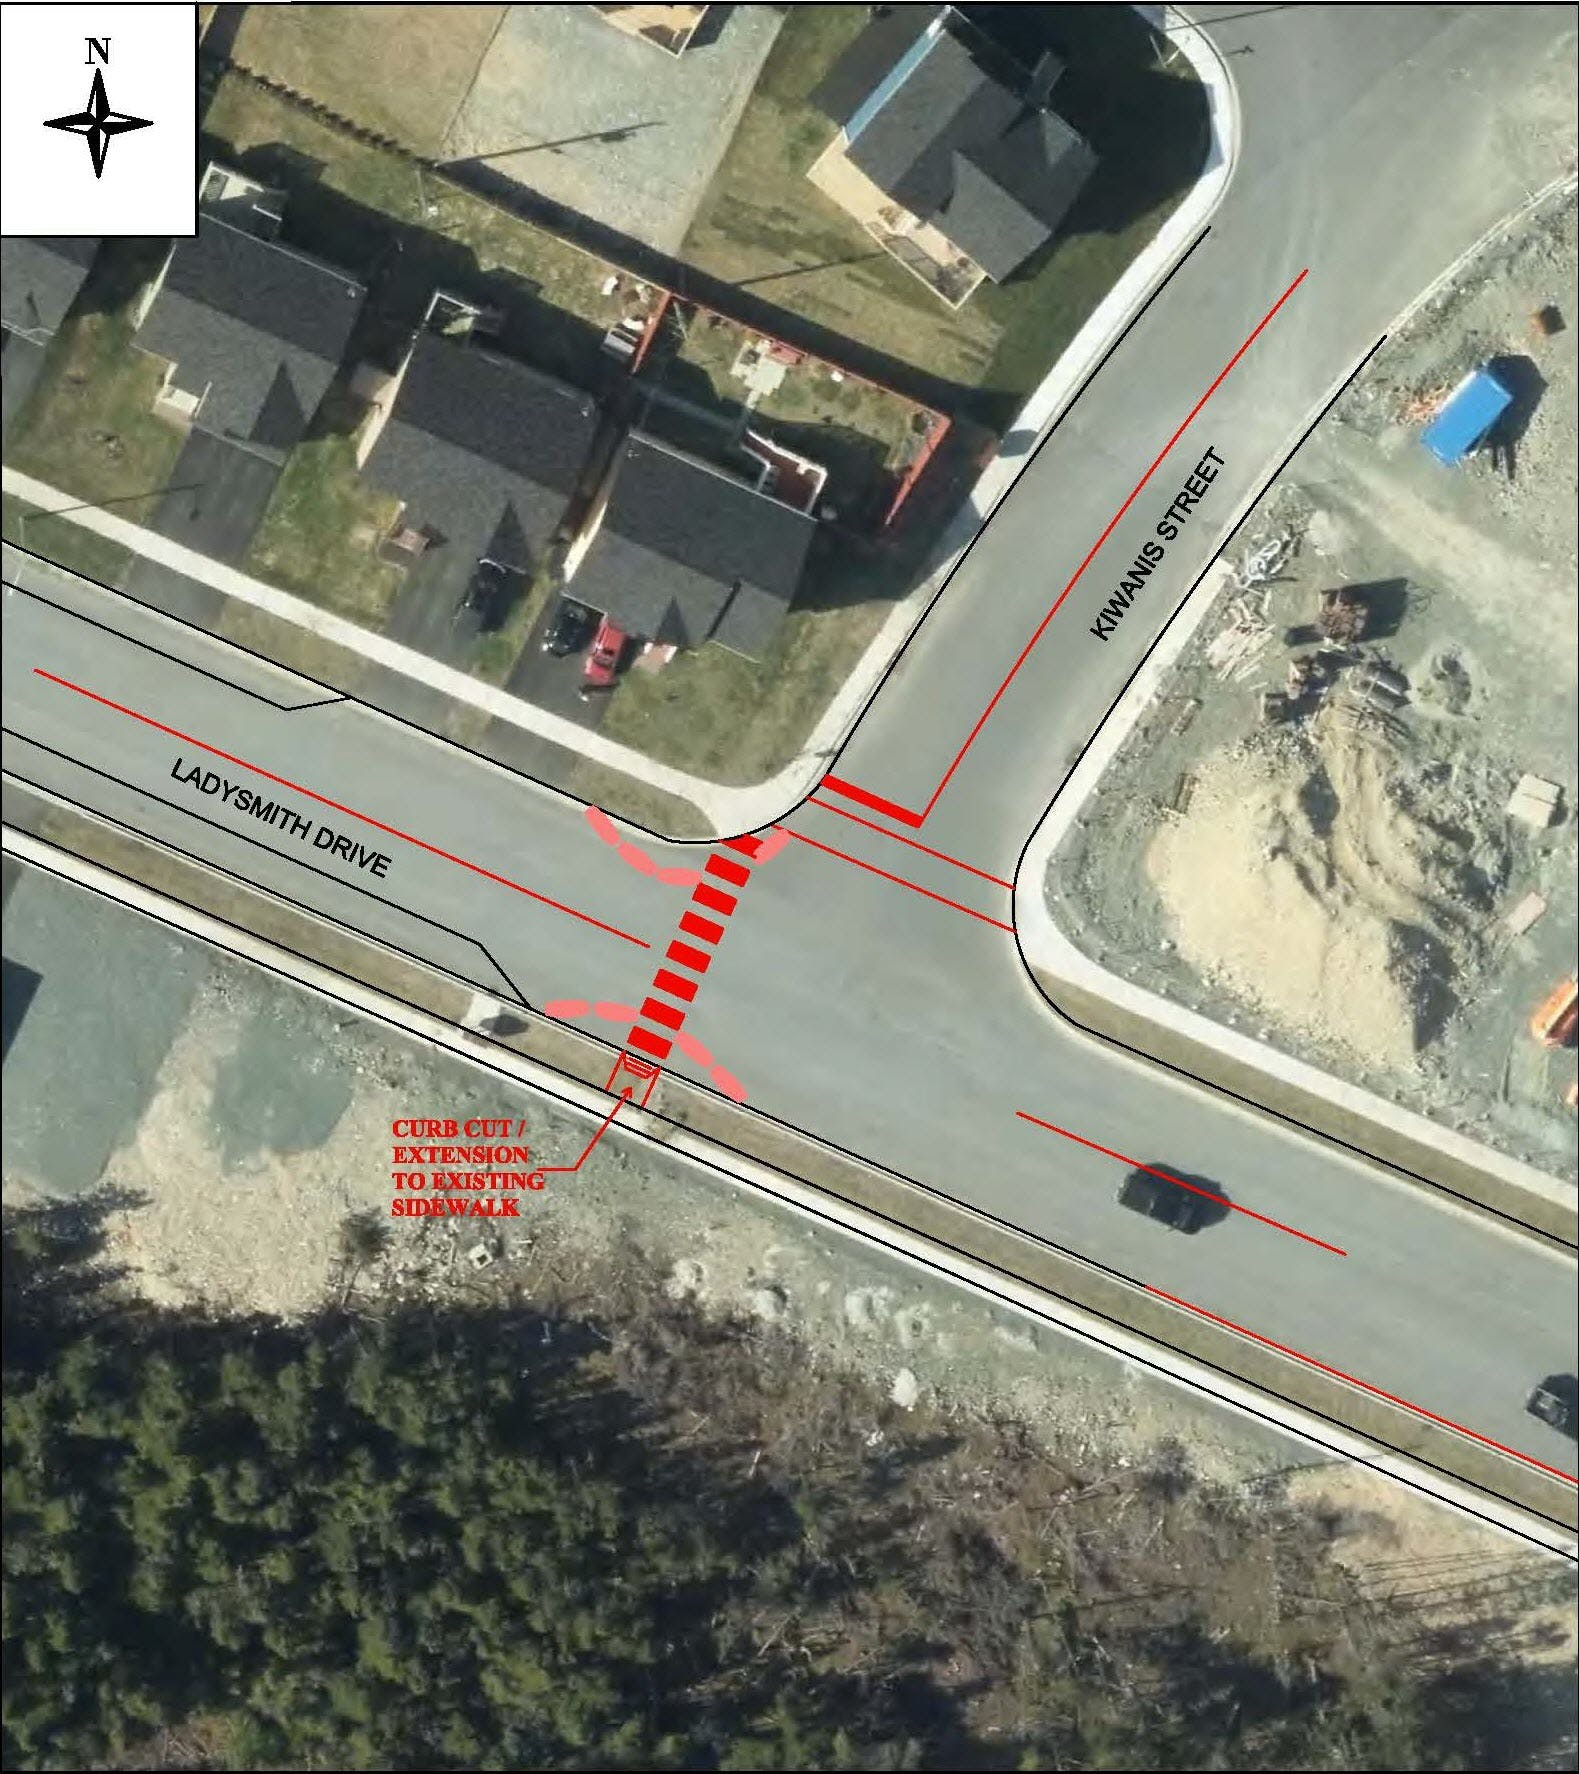 Ladysmith Drive and Kiwanis Street – Curb Extensions and Crosswalk